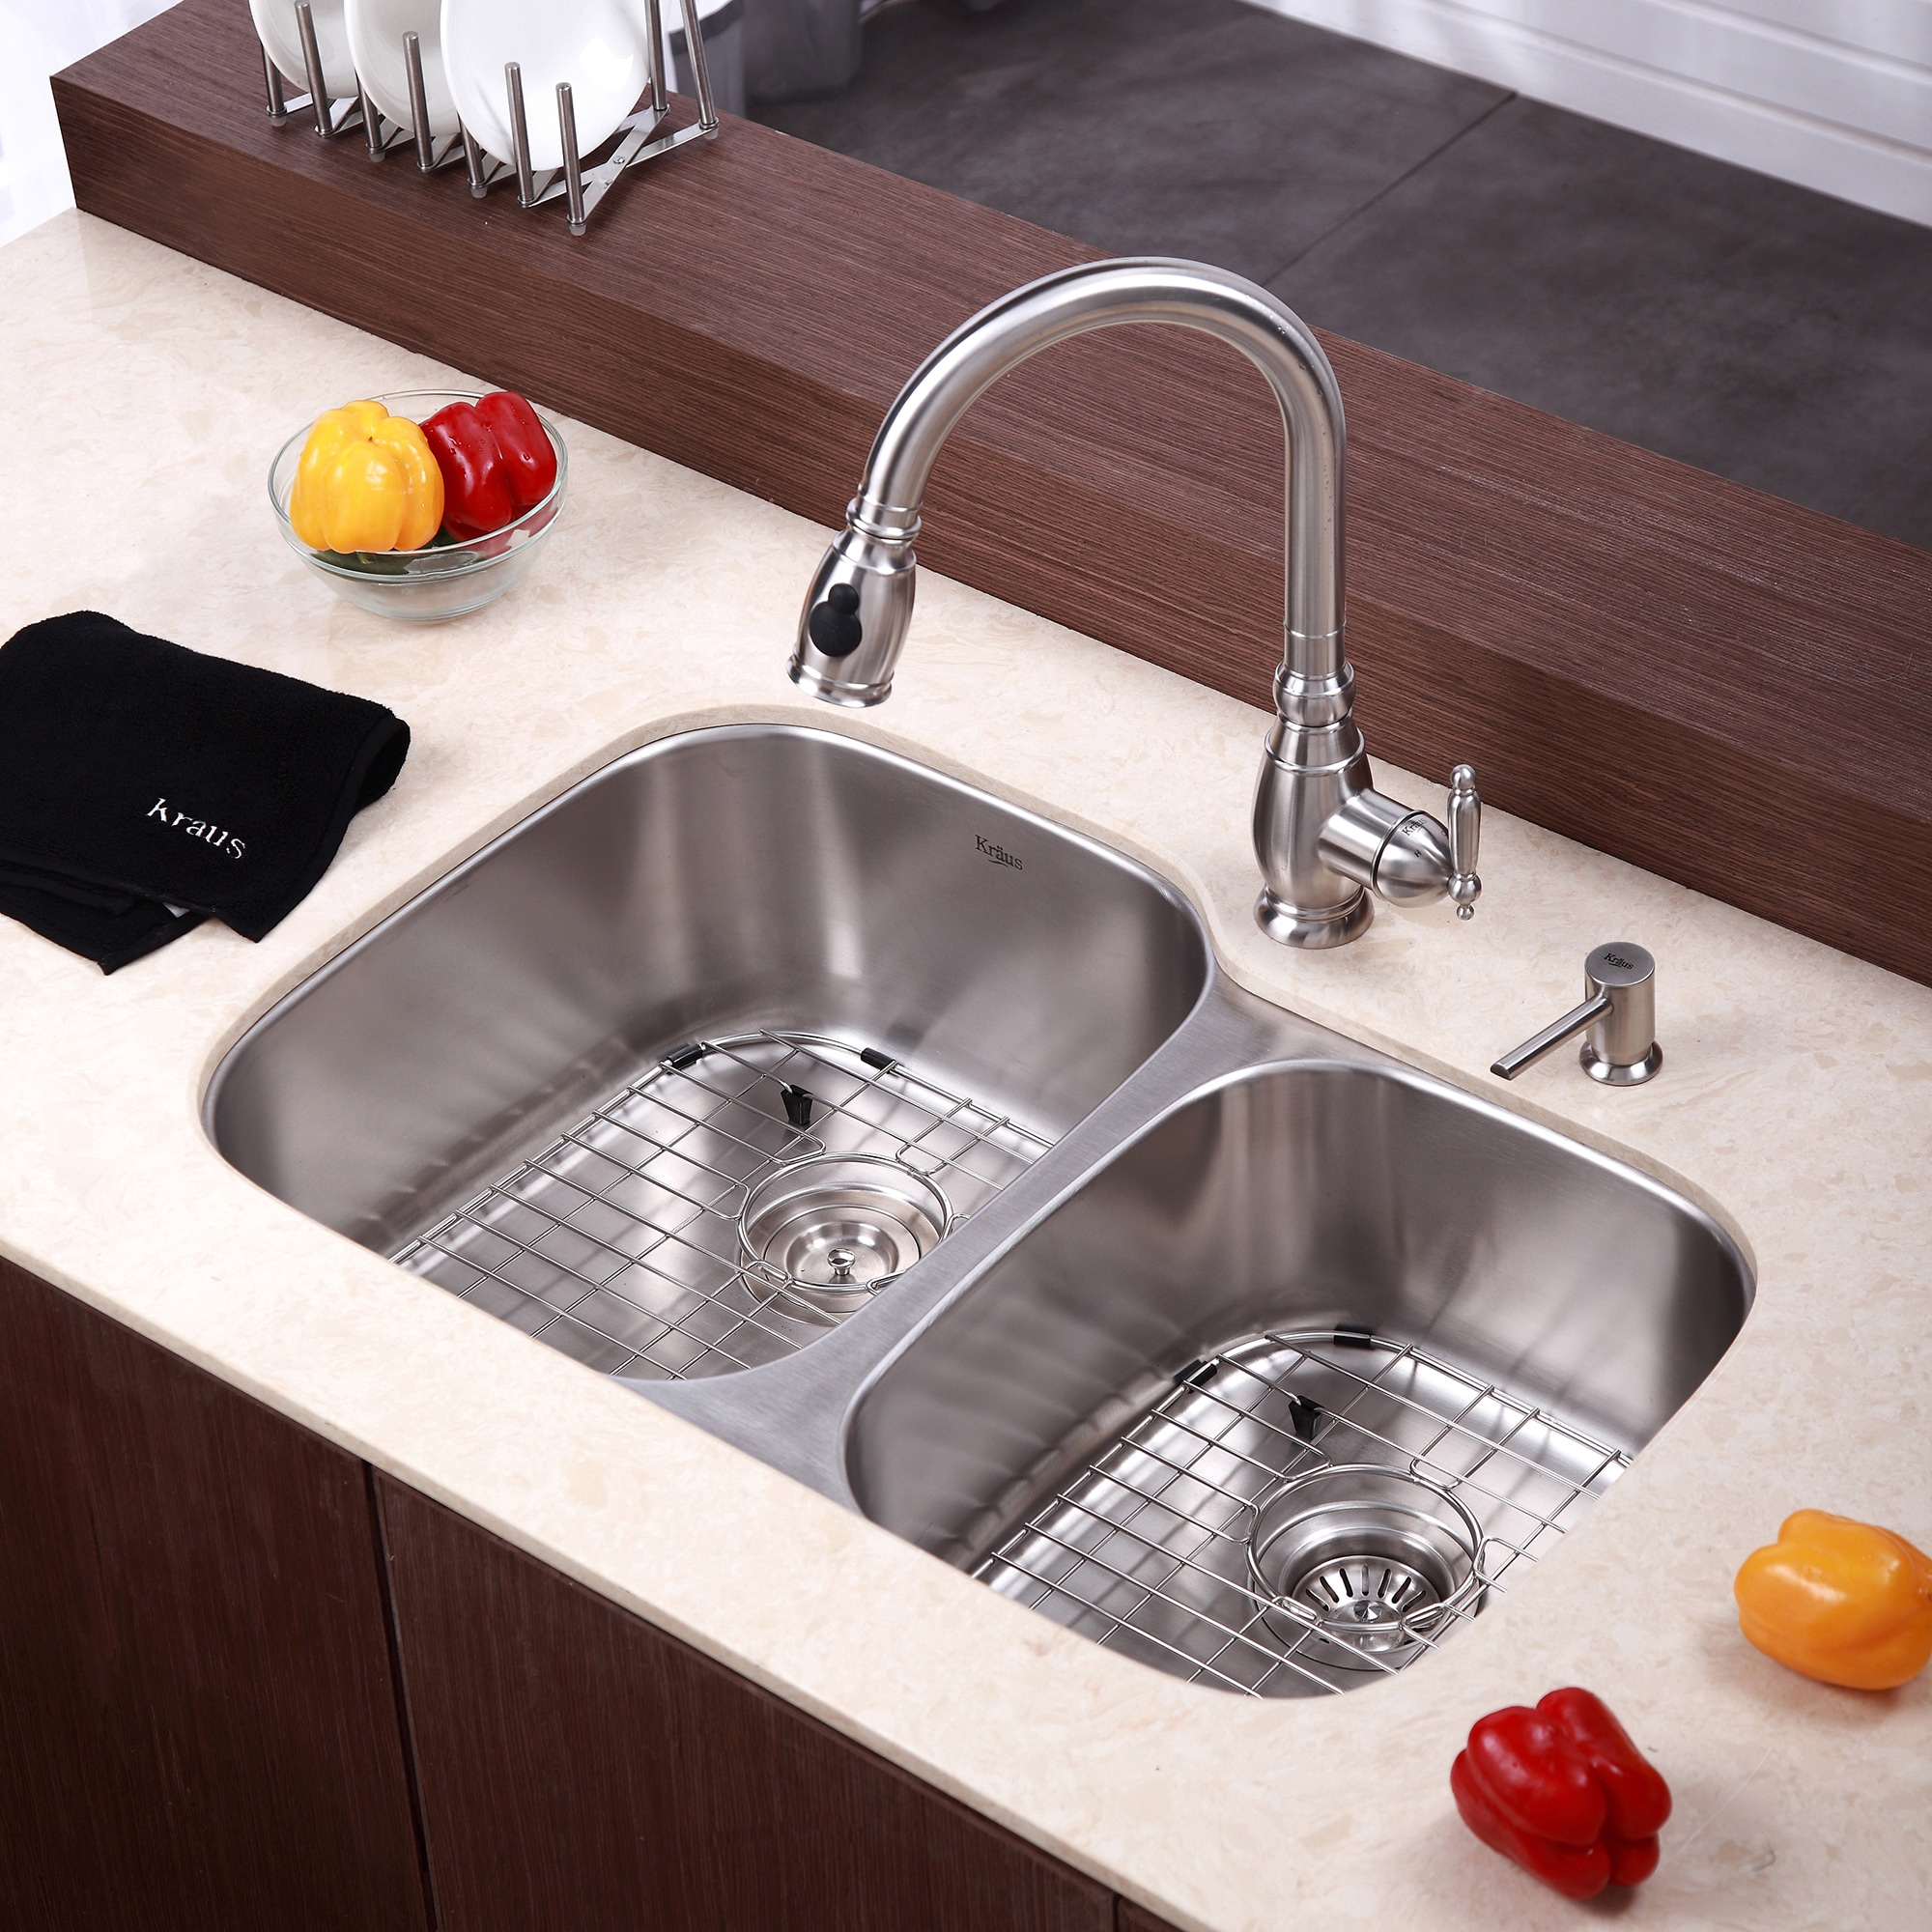 Metal Kitchen Sinks Kraus 32 inch undermount 6040 double bowl 16 gauge stainless steel kraus 32 inch undermount 6040 double bowl 16 gauge stainless steel kitchen sink with noisedefend soundproofing free shipping today overstock 12264214 workwithnaturefo